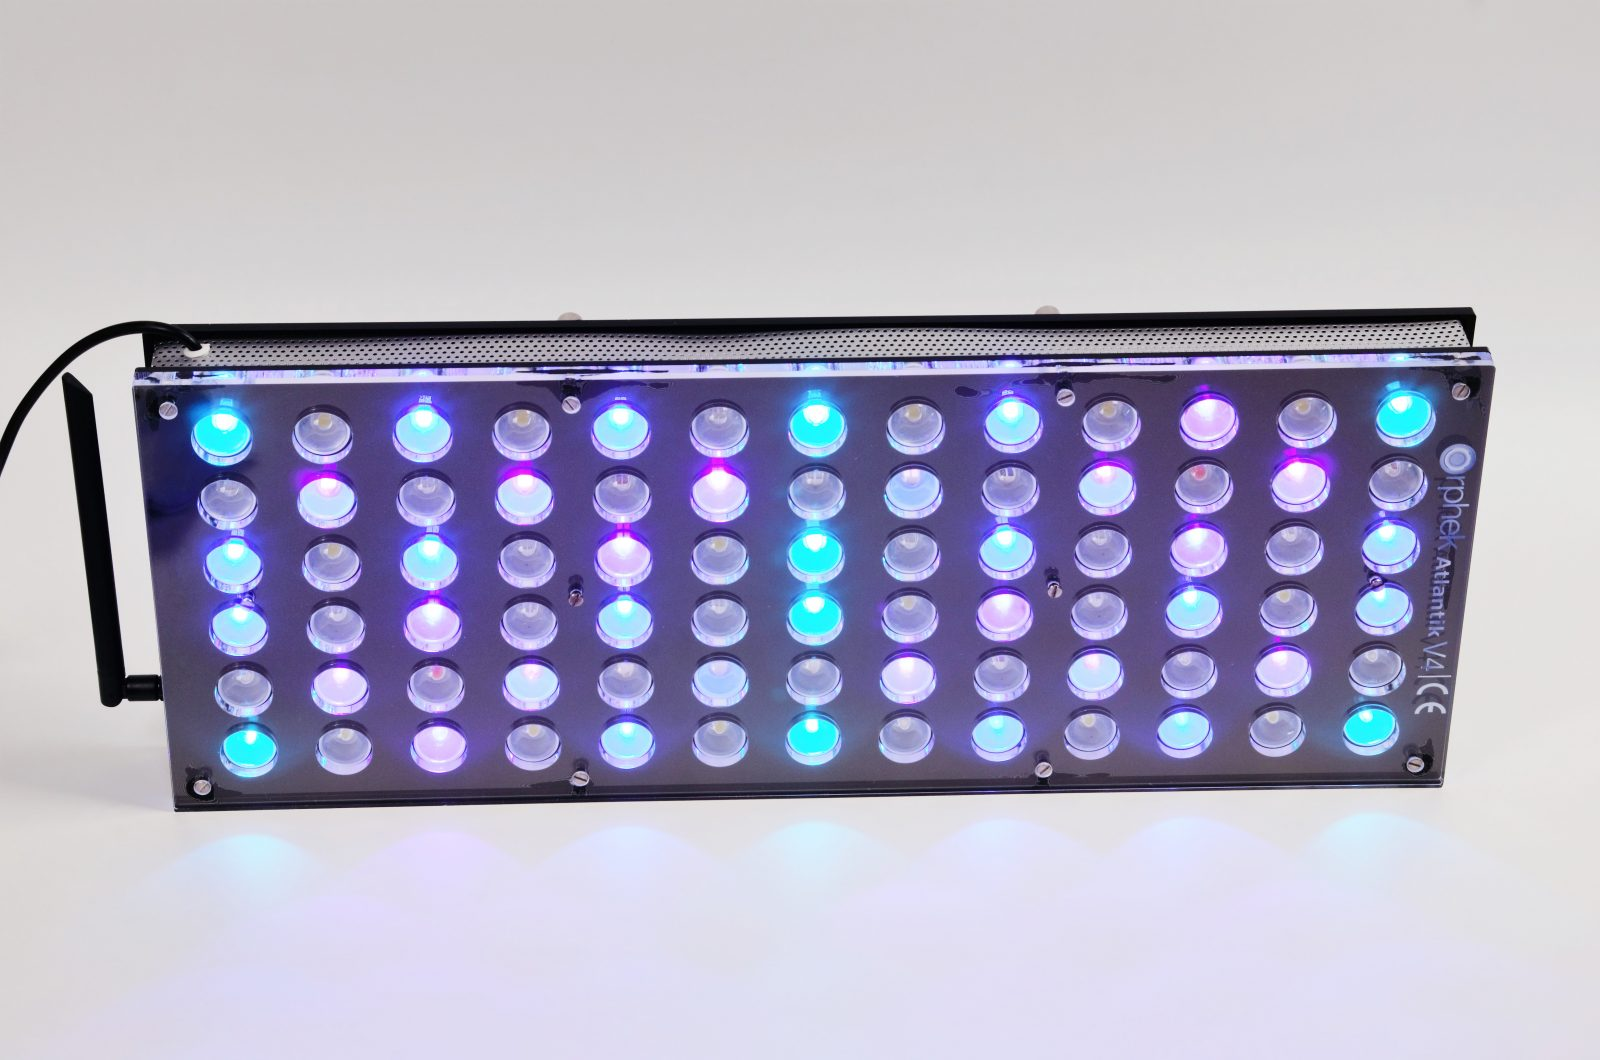 Orphek-Aquarium-LED-Lighting-Reef-Atlantik-V4-lumière-sur-canal 2 + 3